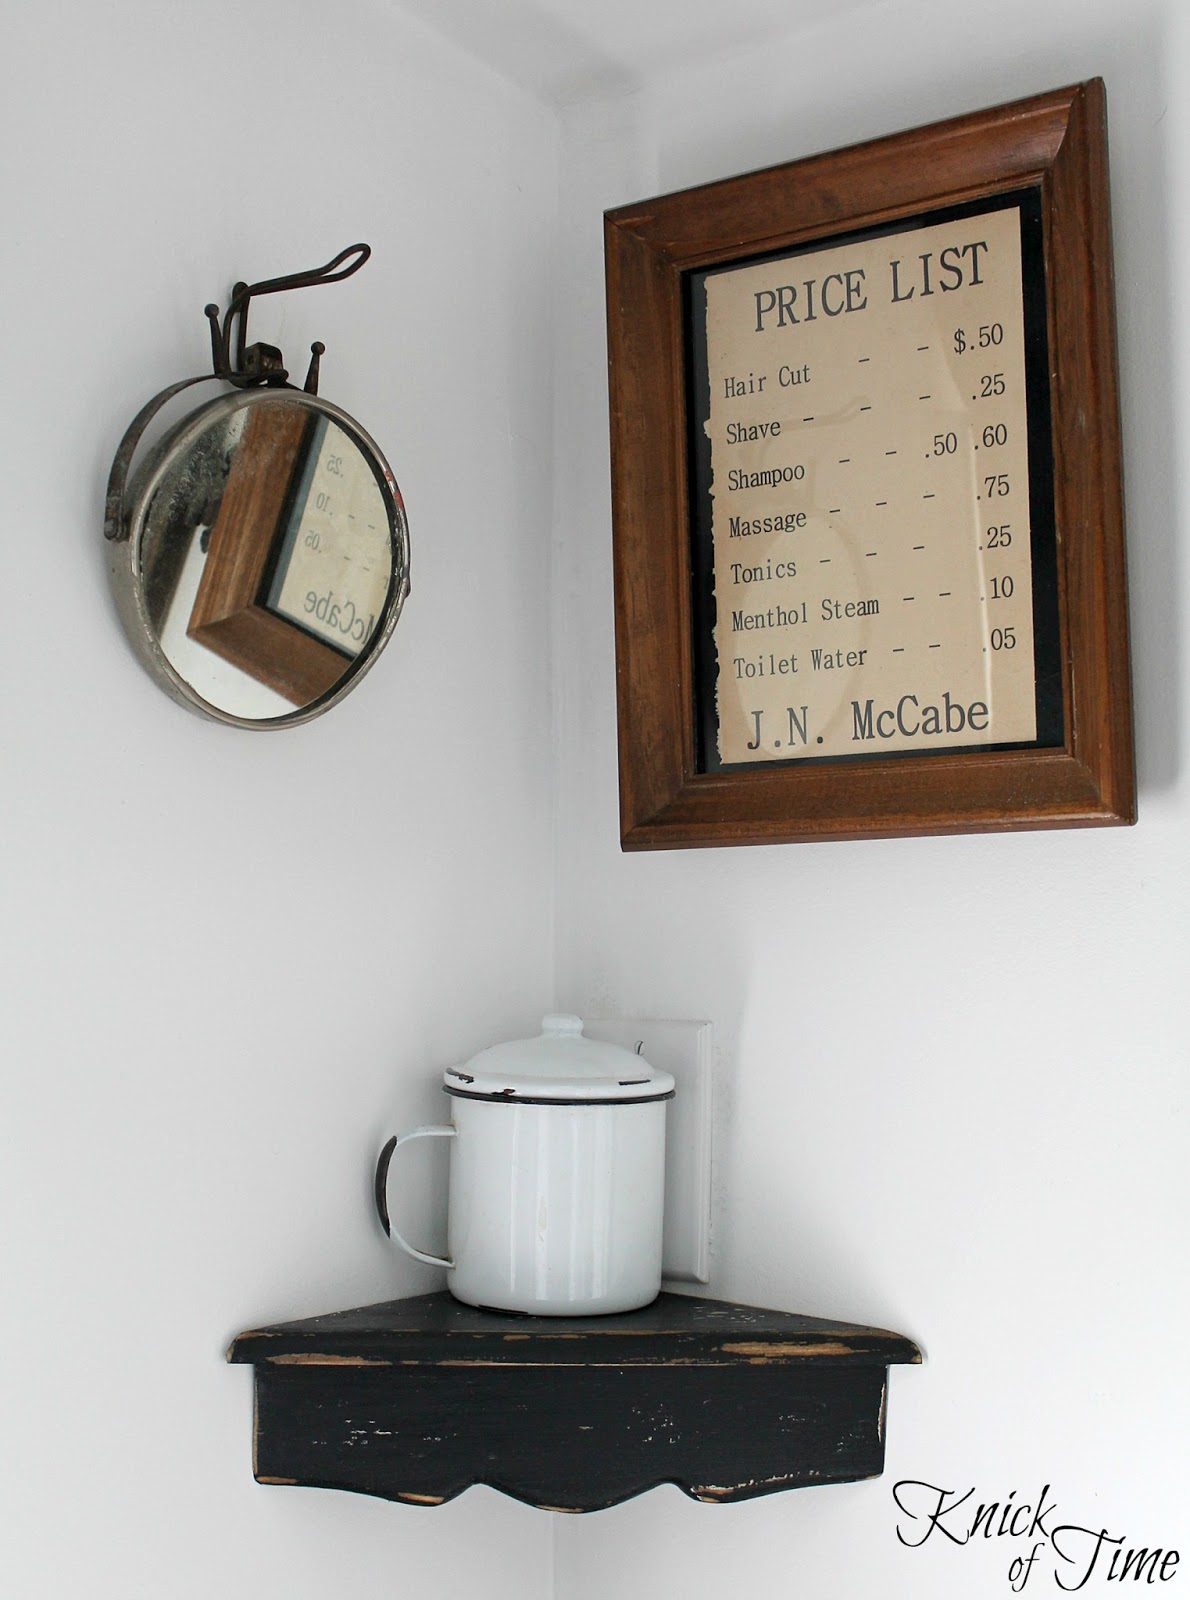 Barber Shop Decor : The barber sign and shelf displaying old barber scissors were made ...